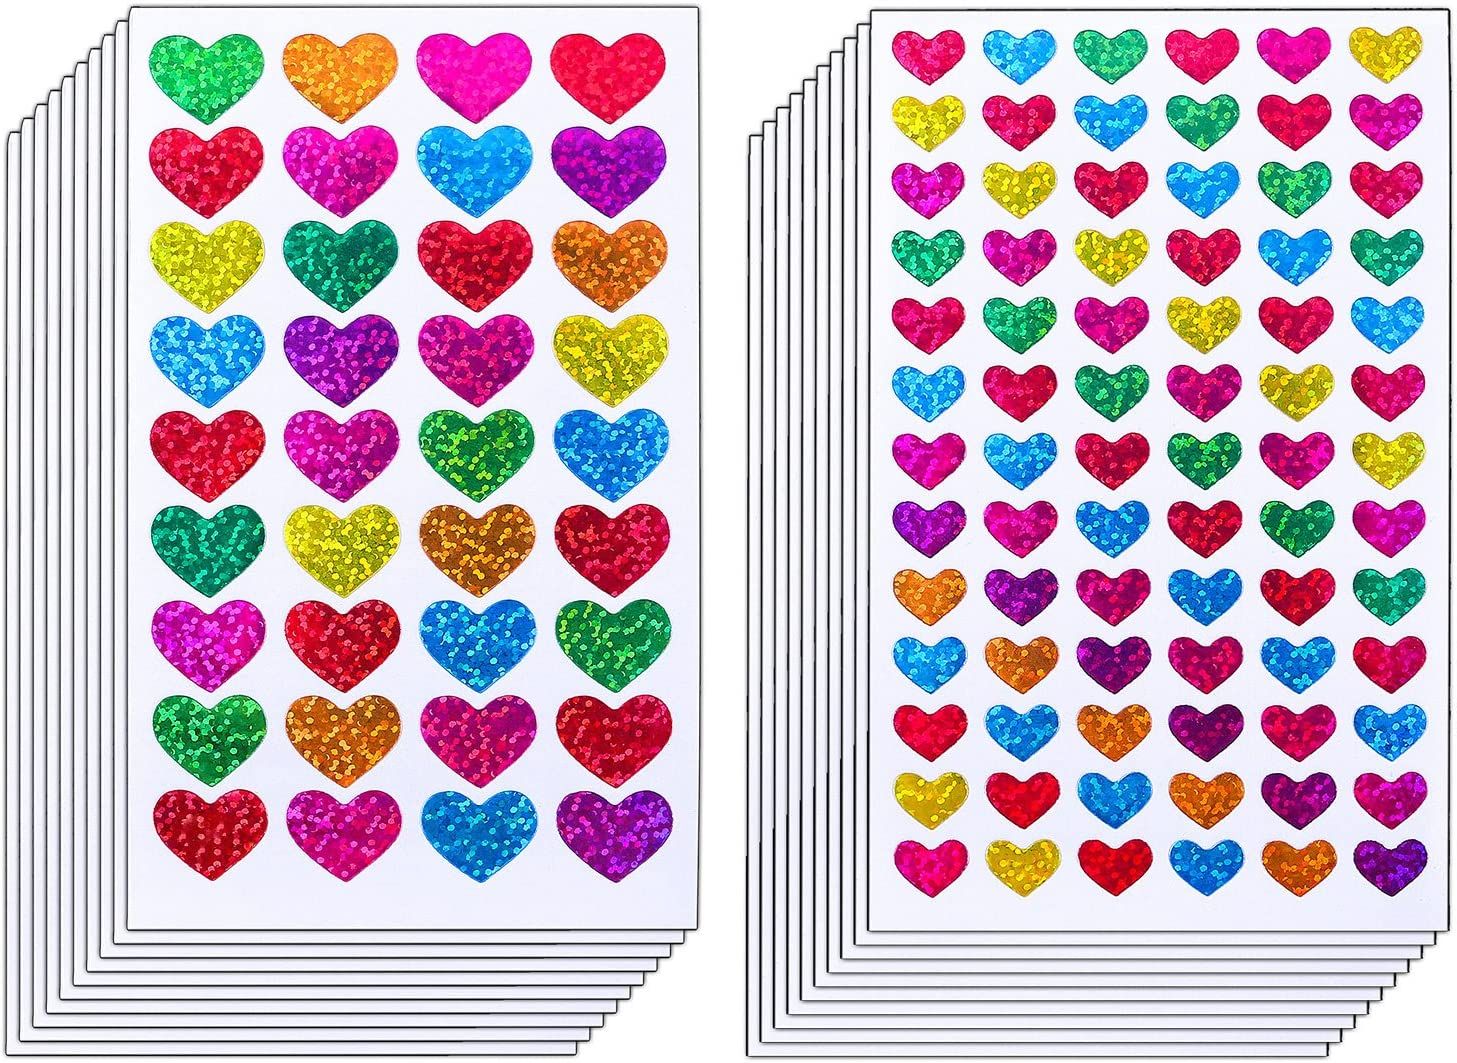 18 Sheet Colorful Decorative Colored Dots,Heart,Stars Adhesive Sticker Tape Kids Craft Scrapbooking